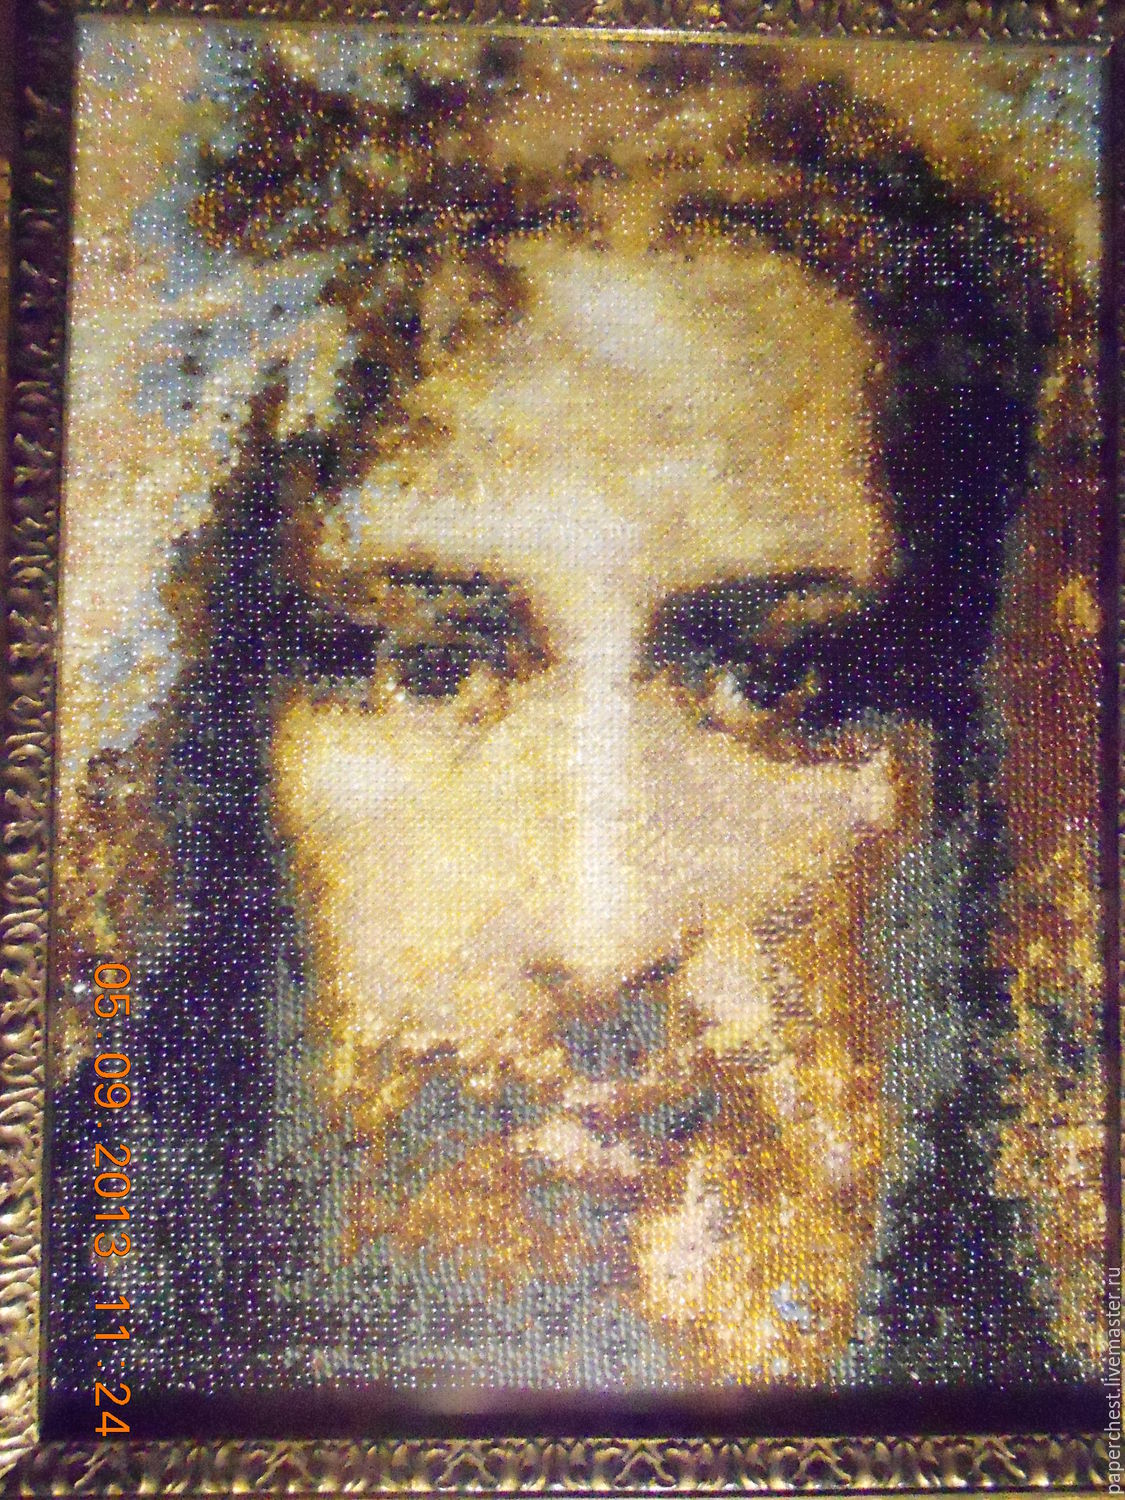 hand embroidery beaded shroud of jesus christ shop online on